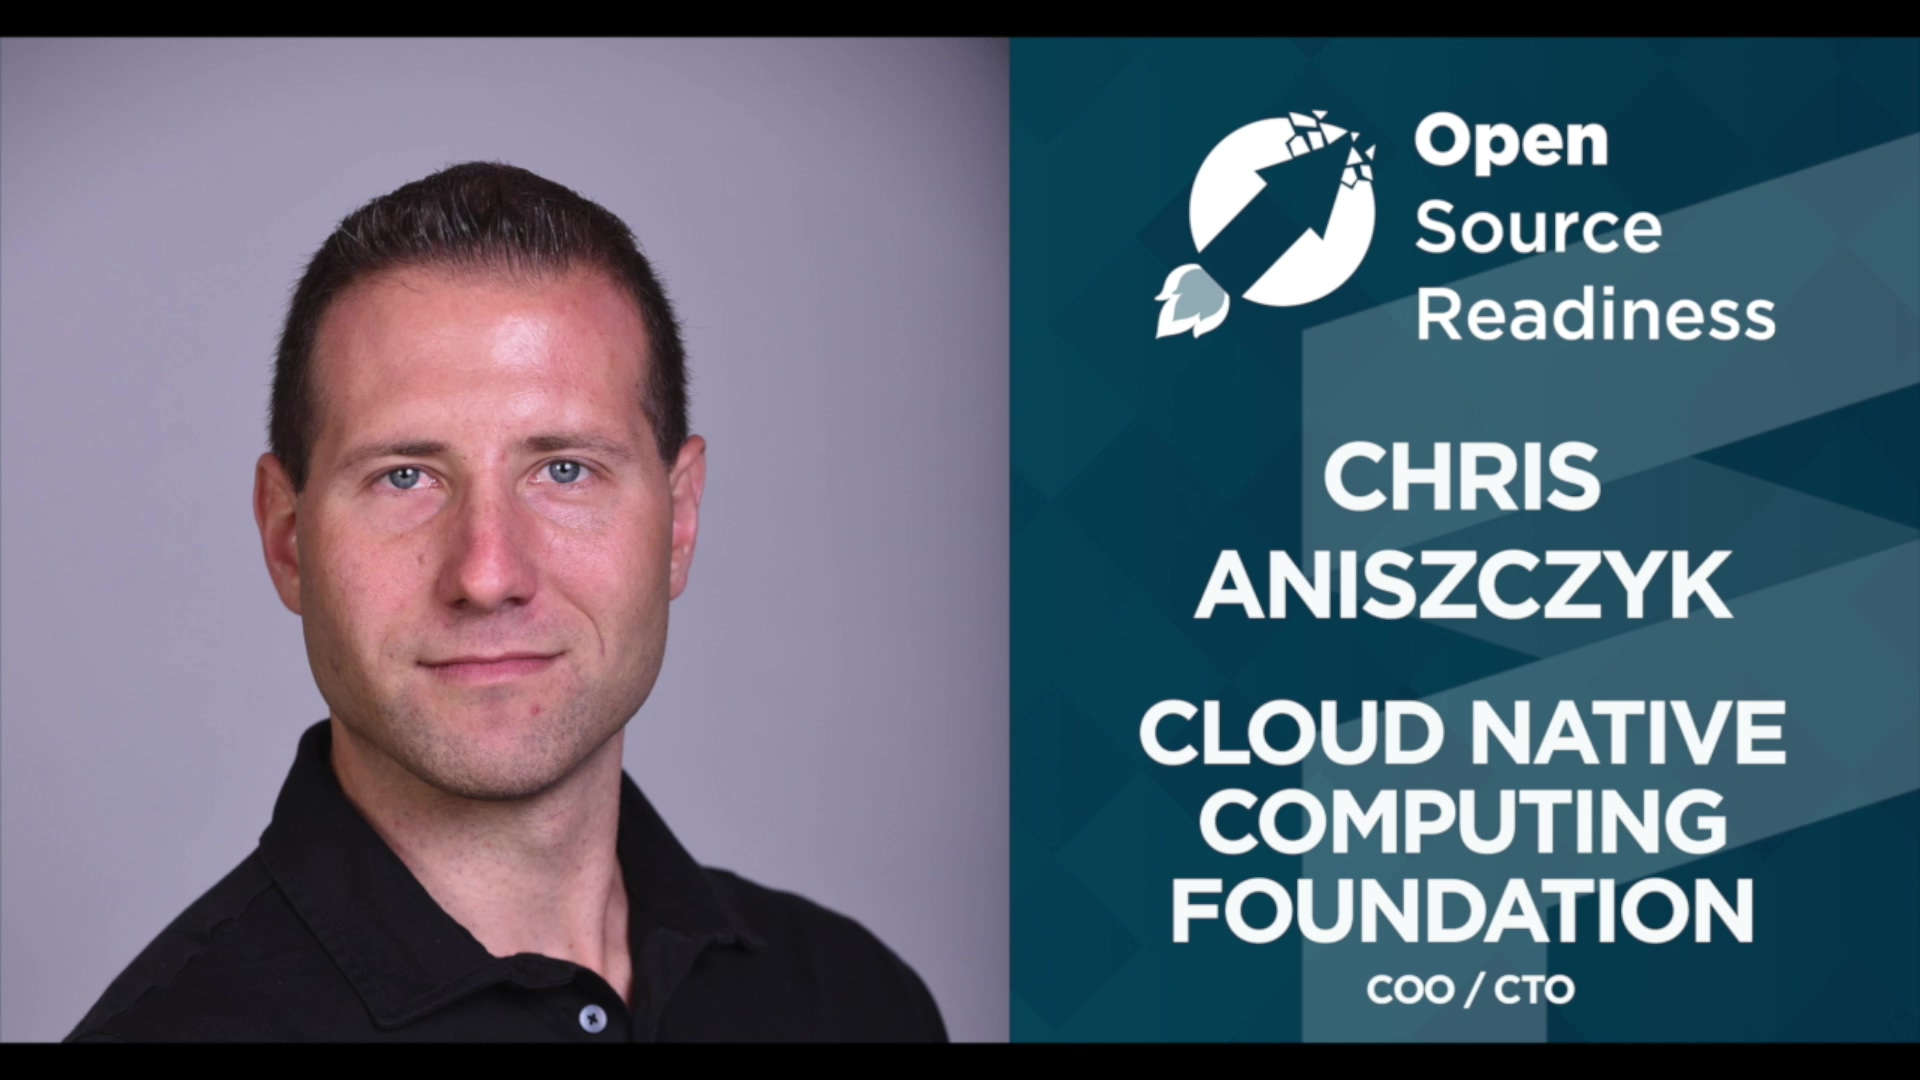 FINOS Open Source Readiness - Chris Aniszczyk May 2020-thumb